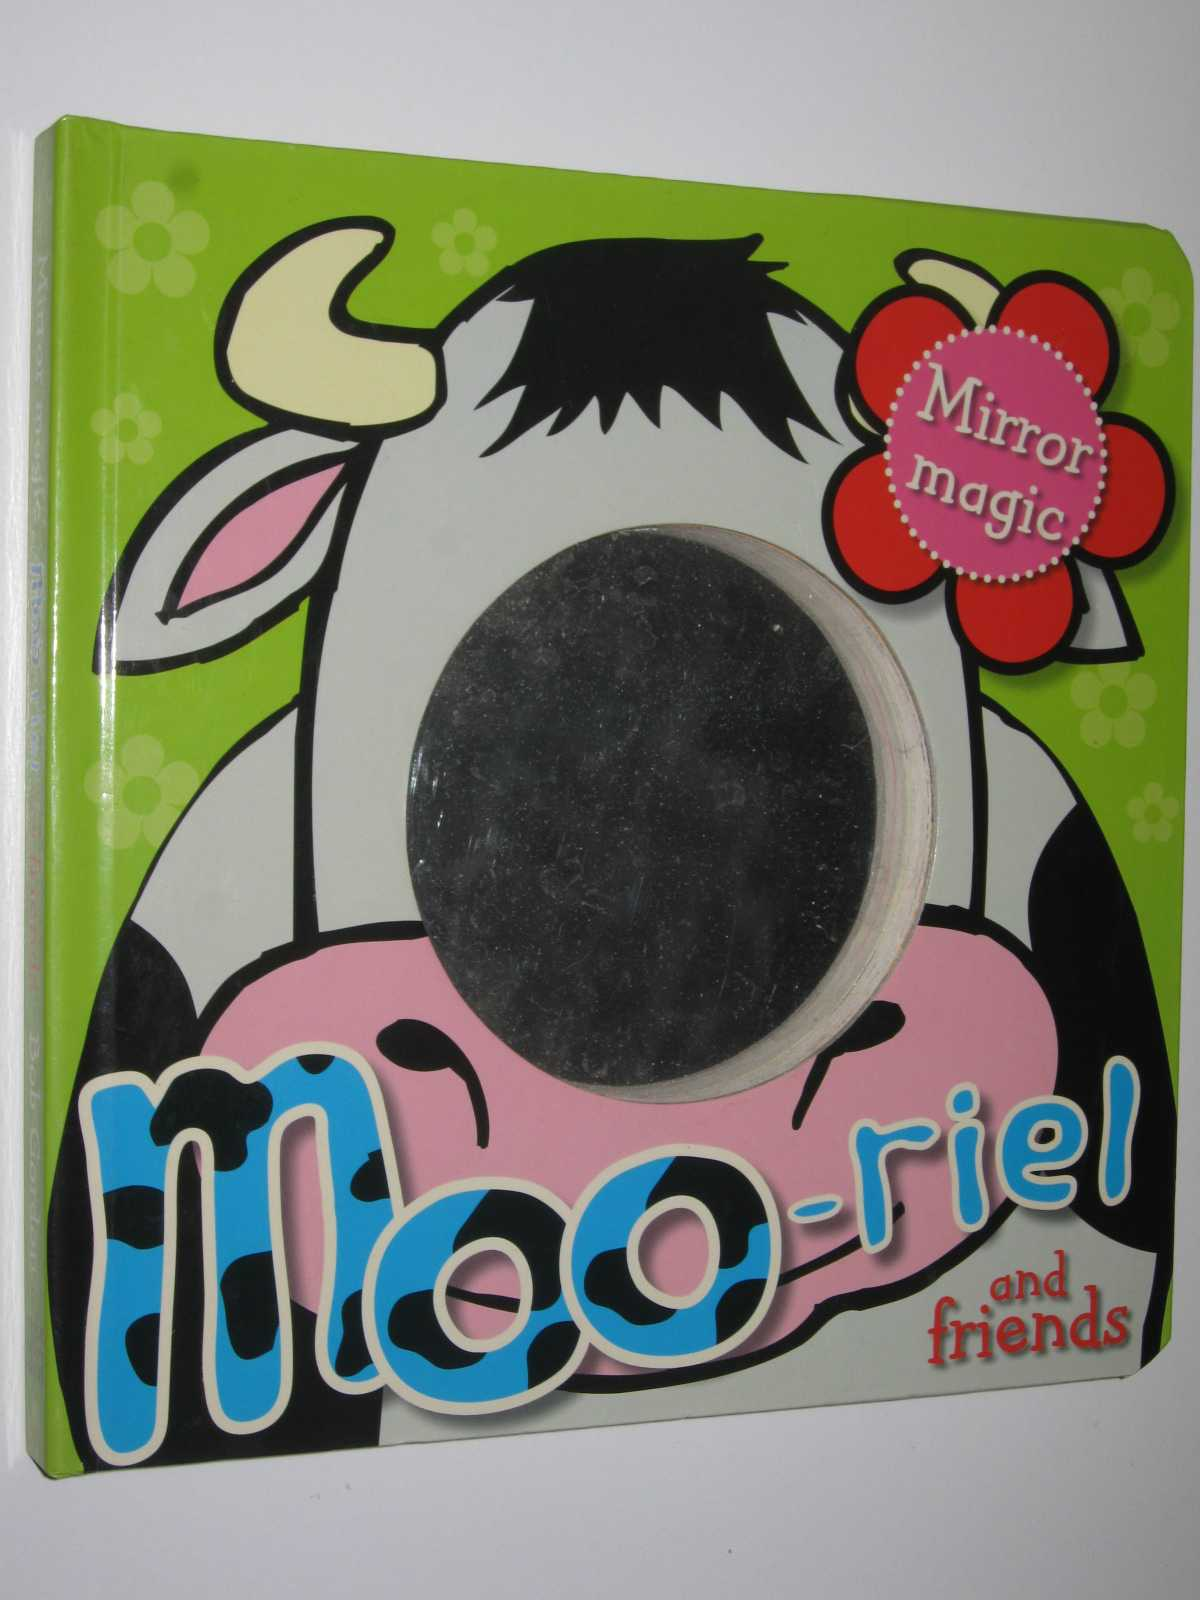 Image for Moo-Riel And Friends Mirror Magic